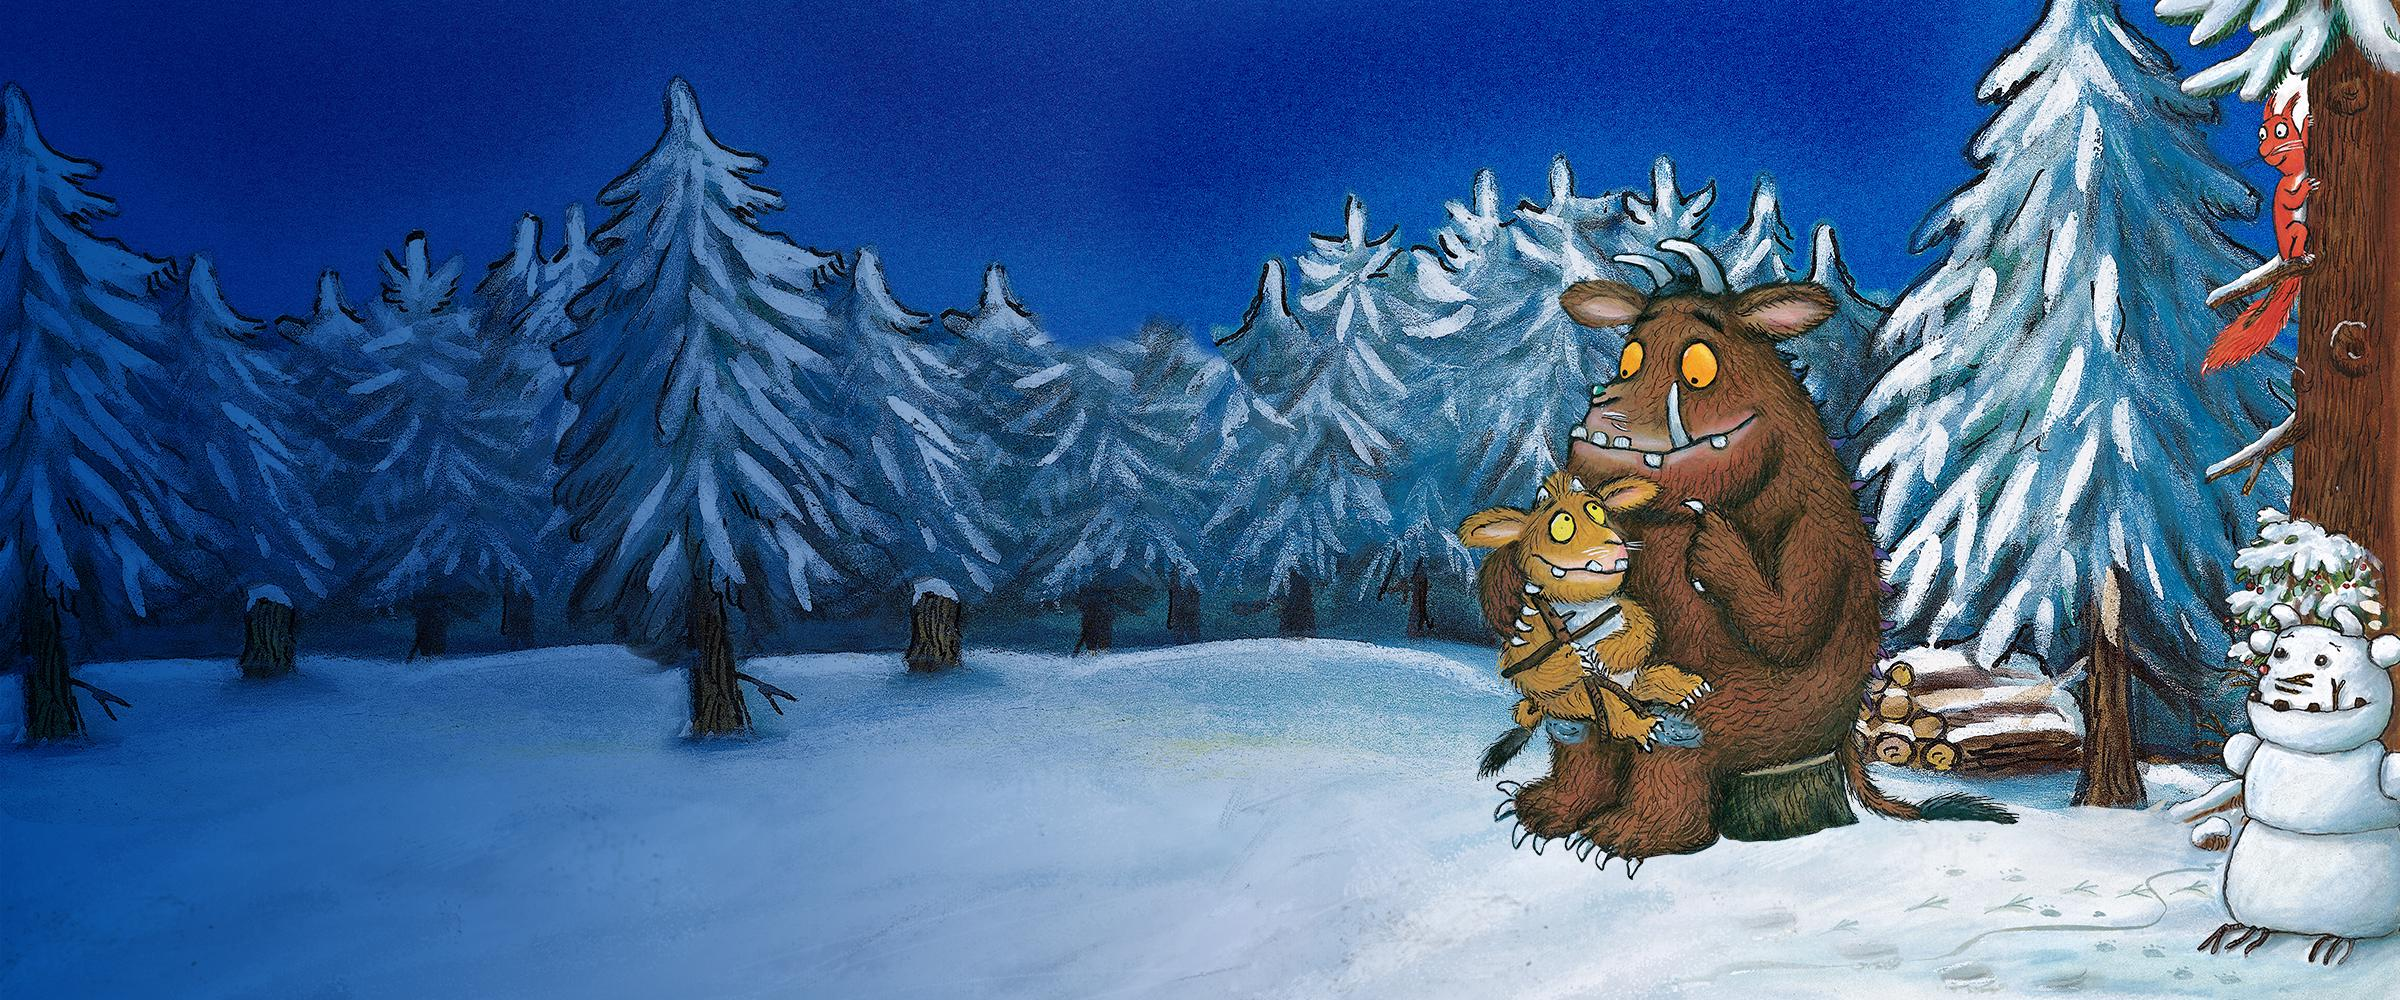 The Gruffalo and child sat in a winter forest illustration